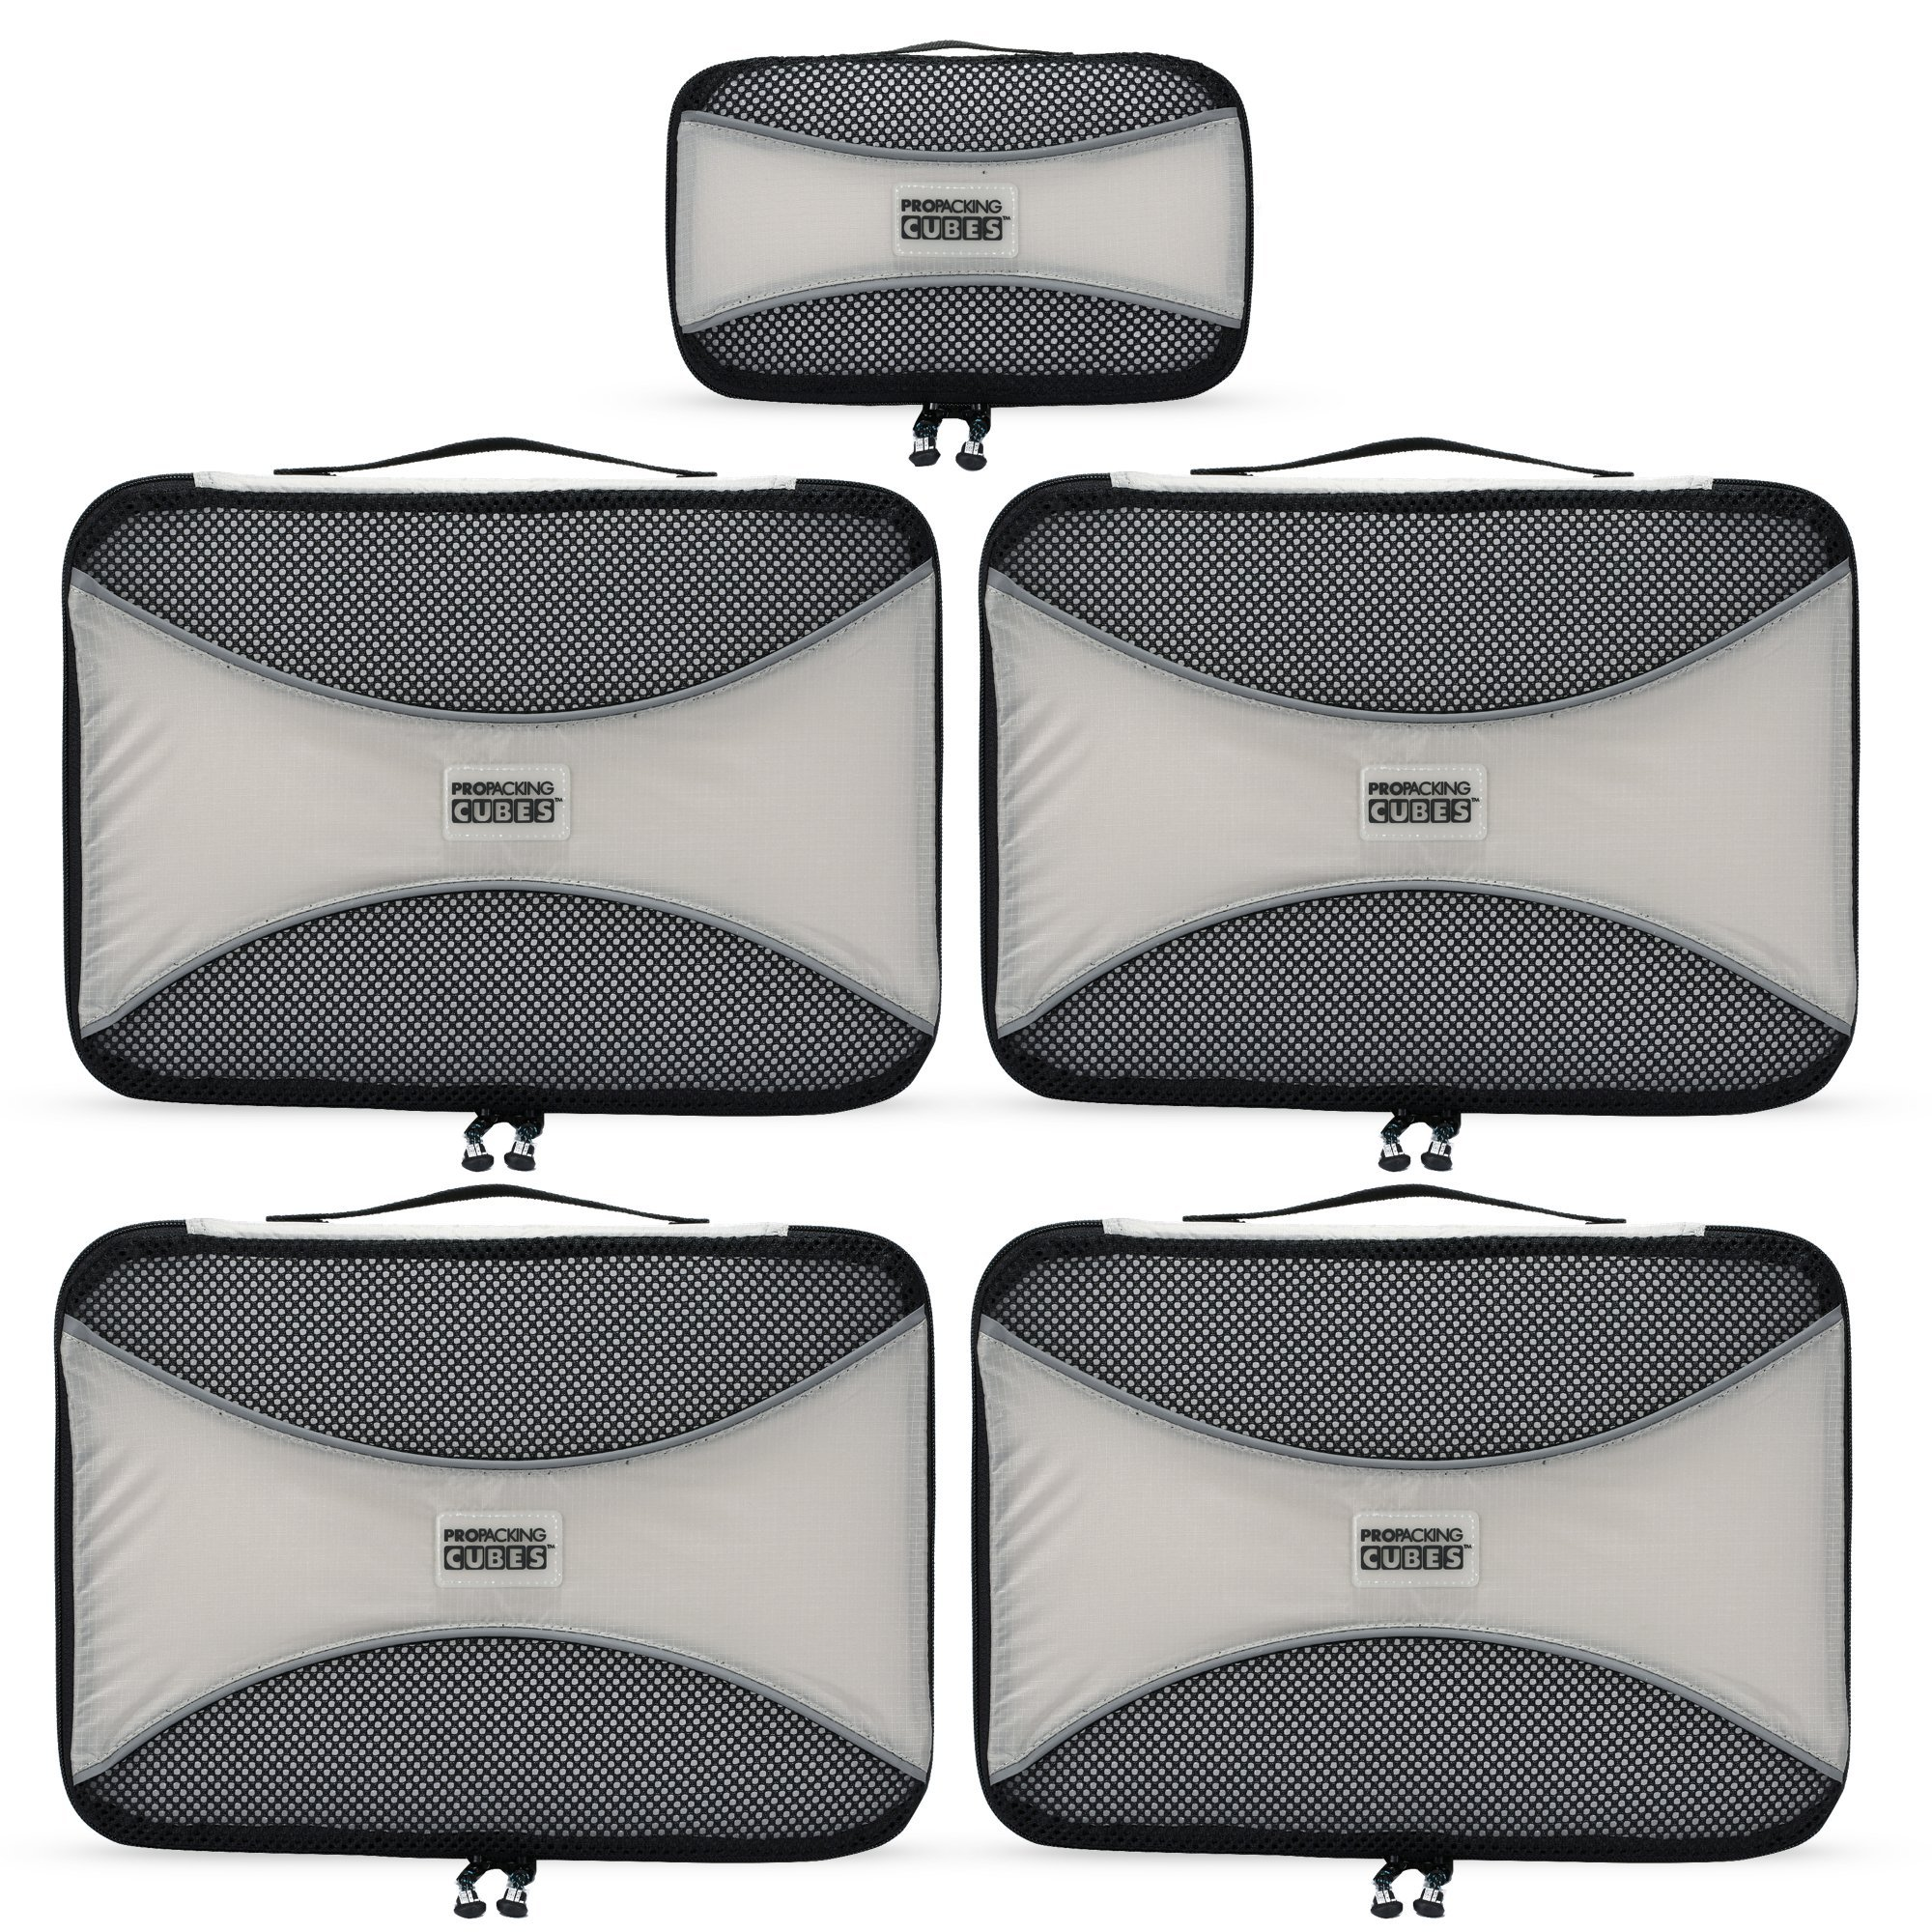 PRO Packing Cubes - 5 Piece Medium Ultra Lightweight Travel Packing Cubes Set - Organizers and Compression Pouches System for Carry-on Luggage Accessories, Suitcase and Backpacking (Silver Gray)